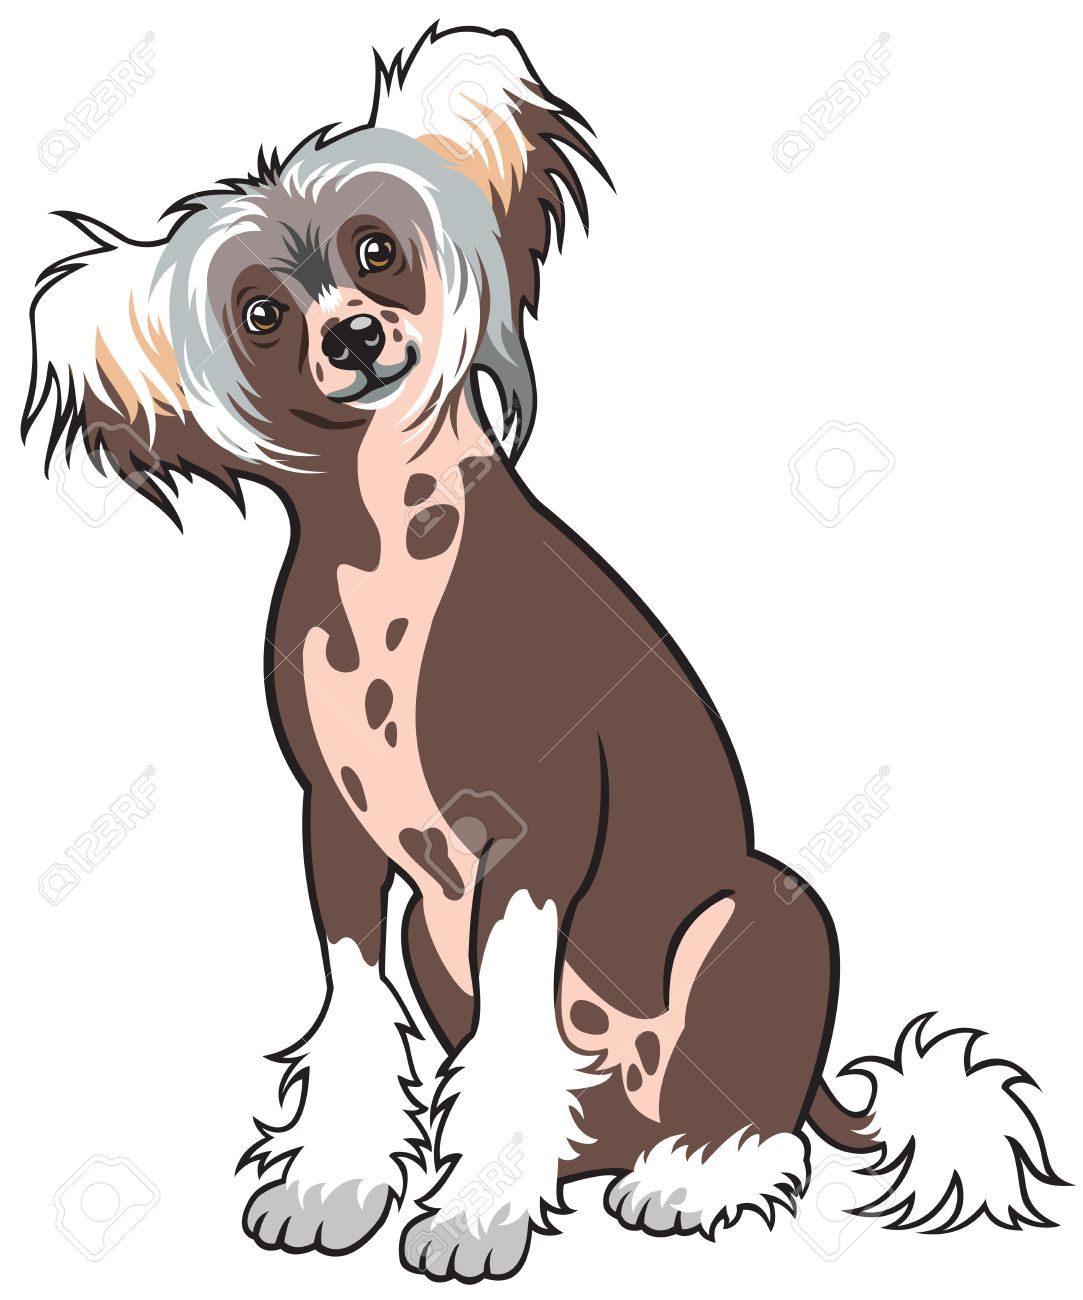 Chinese Crested Dog clipart #13, Download drawings